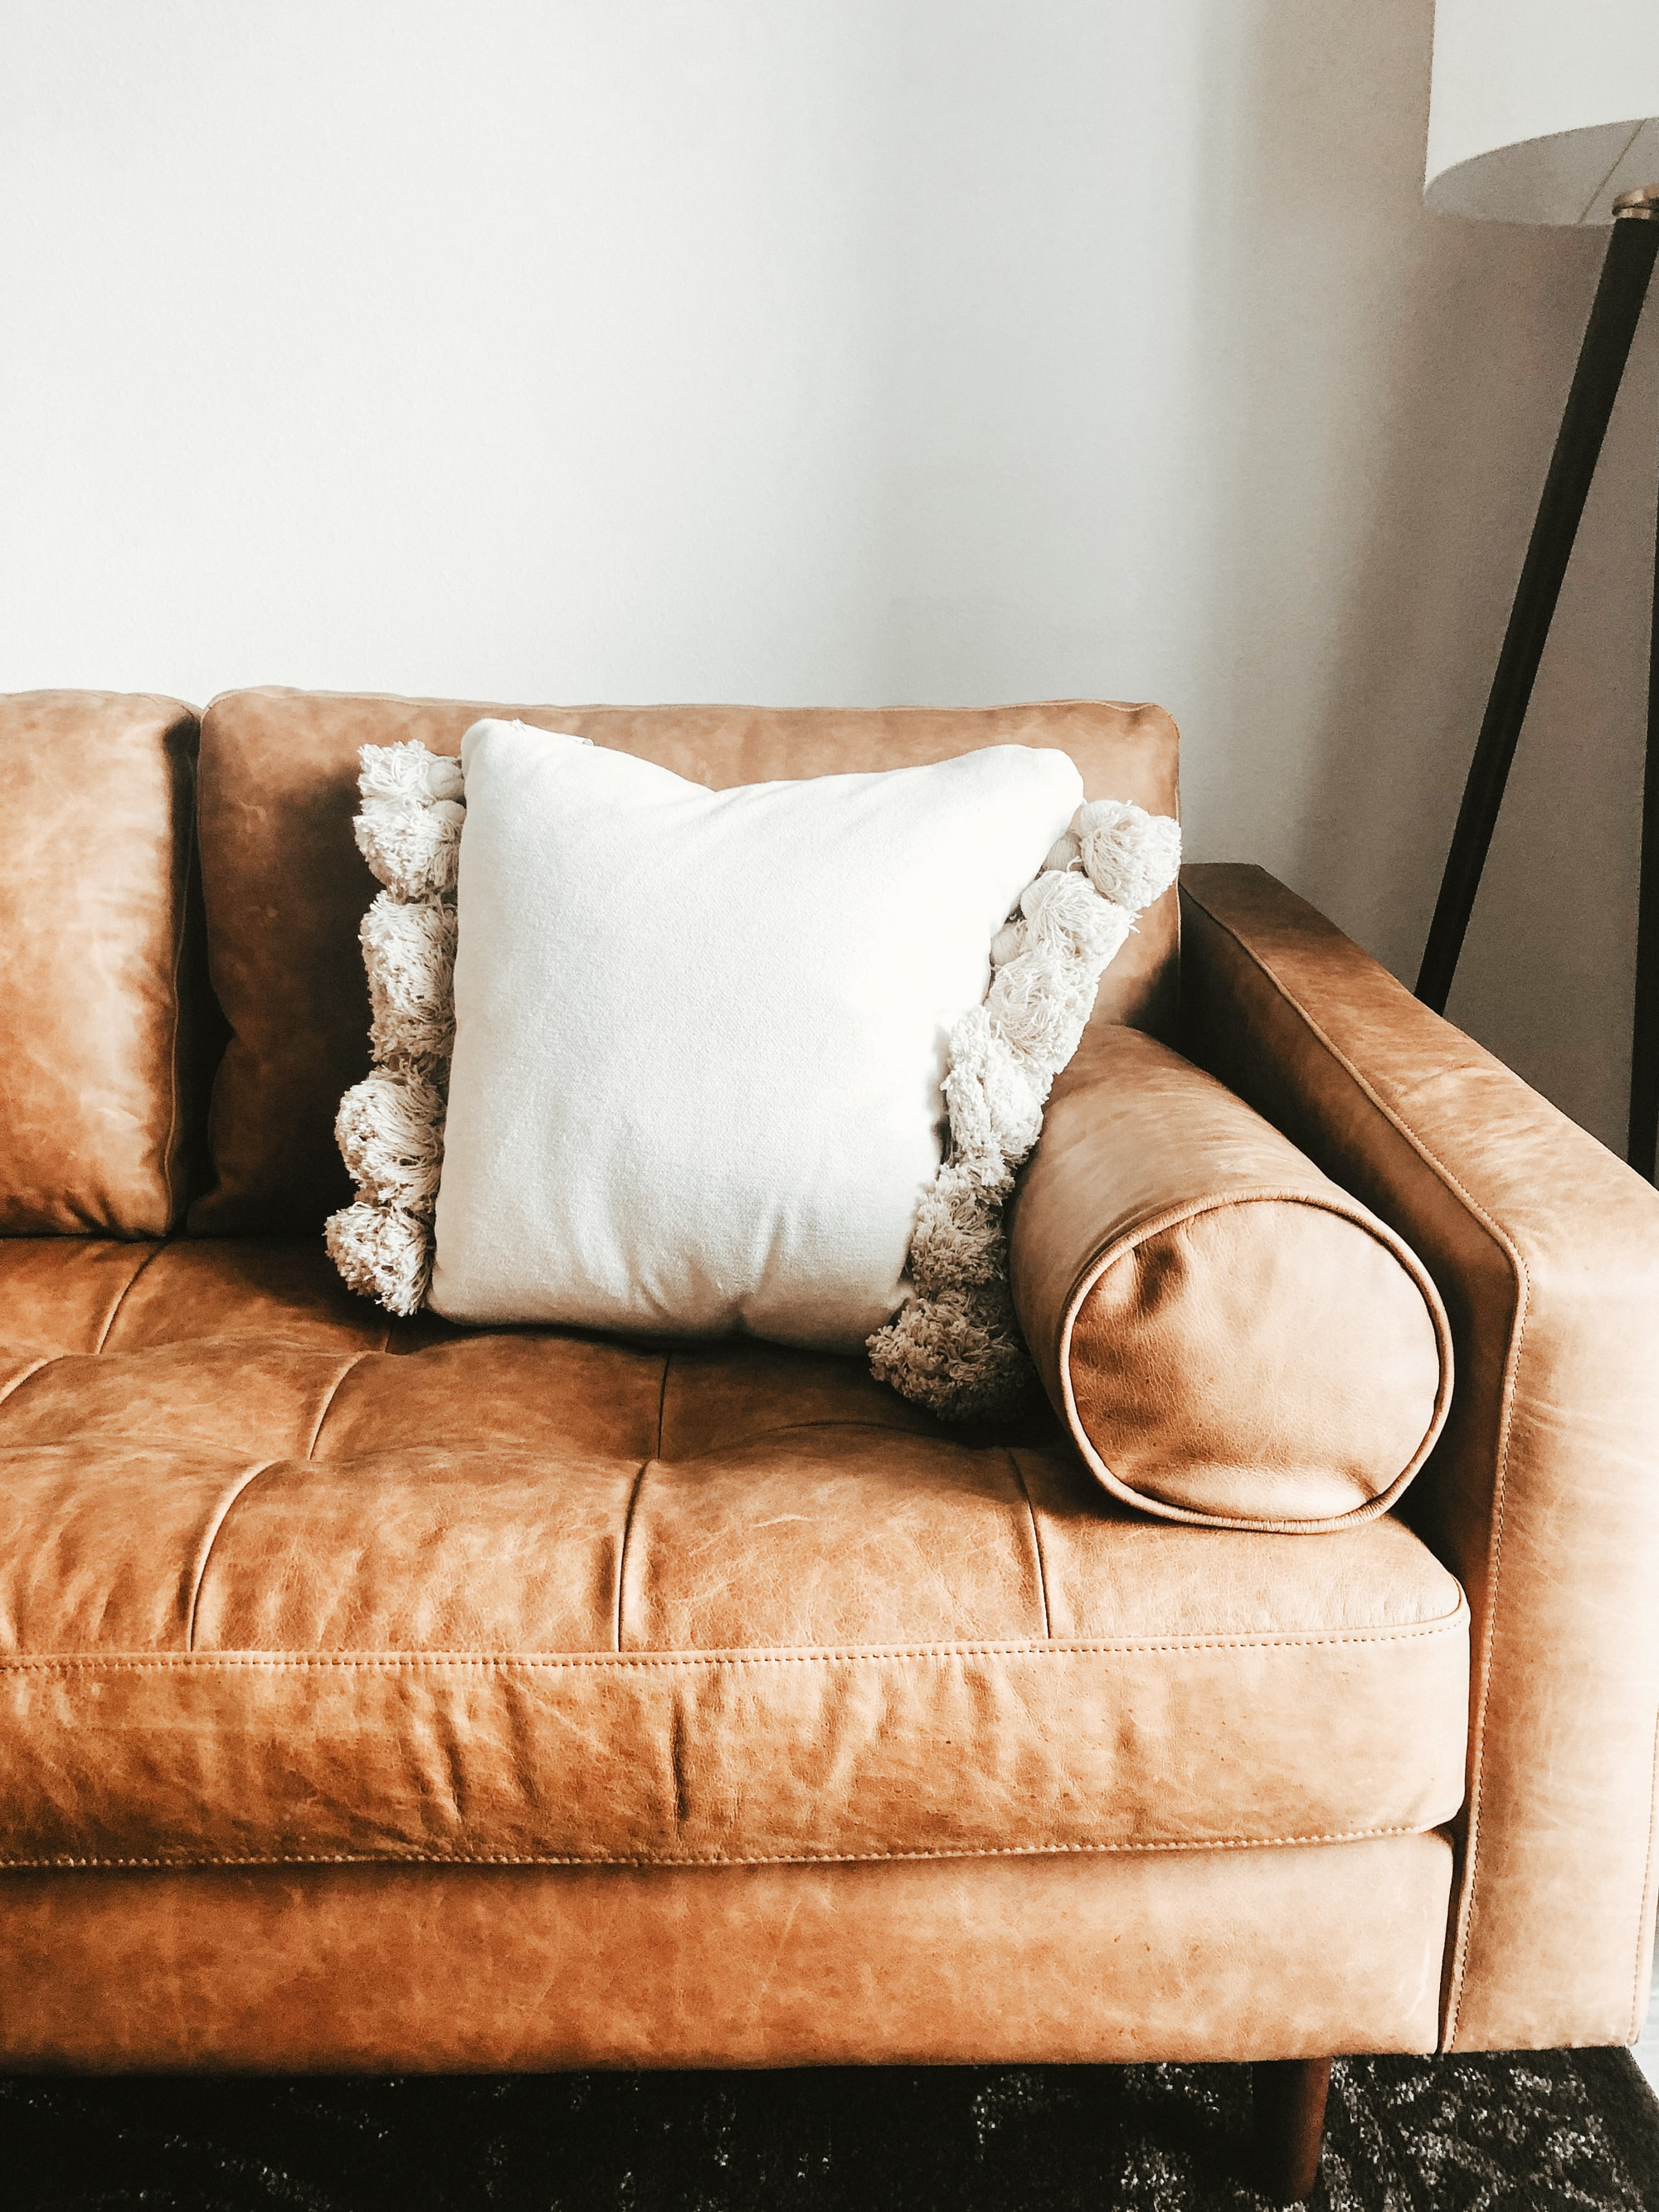 White pillow on a cozy leather couch.